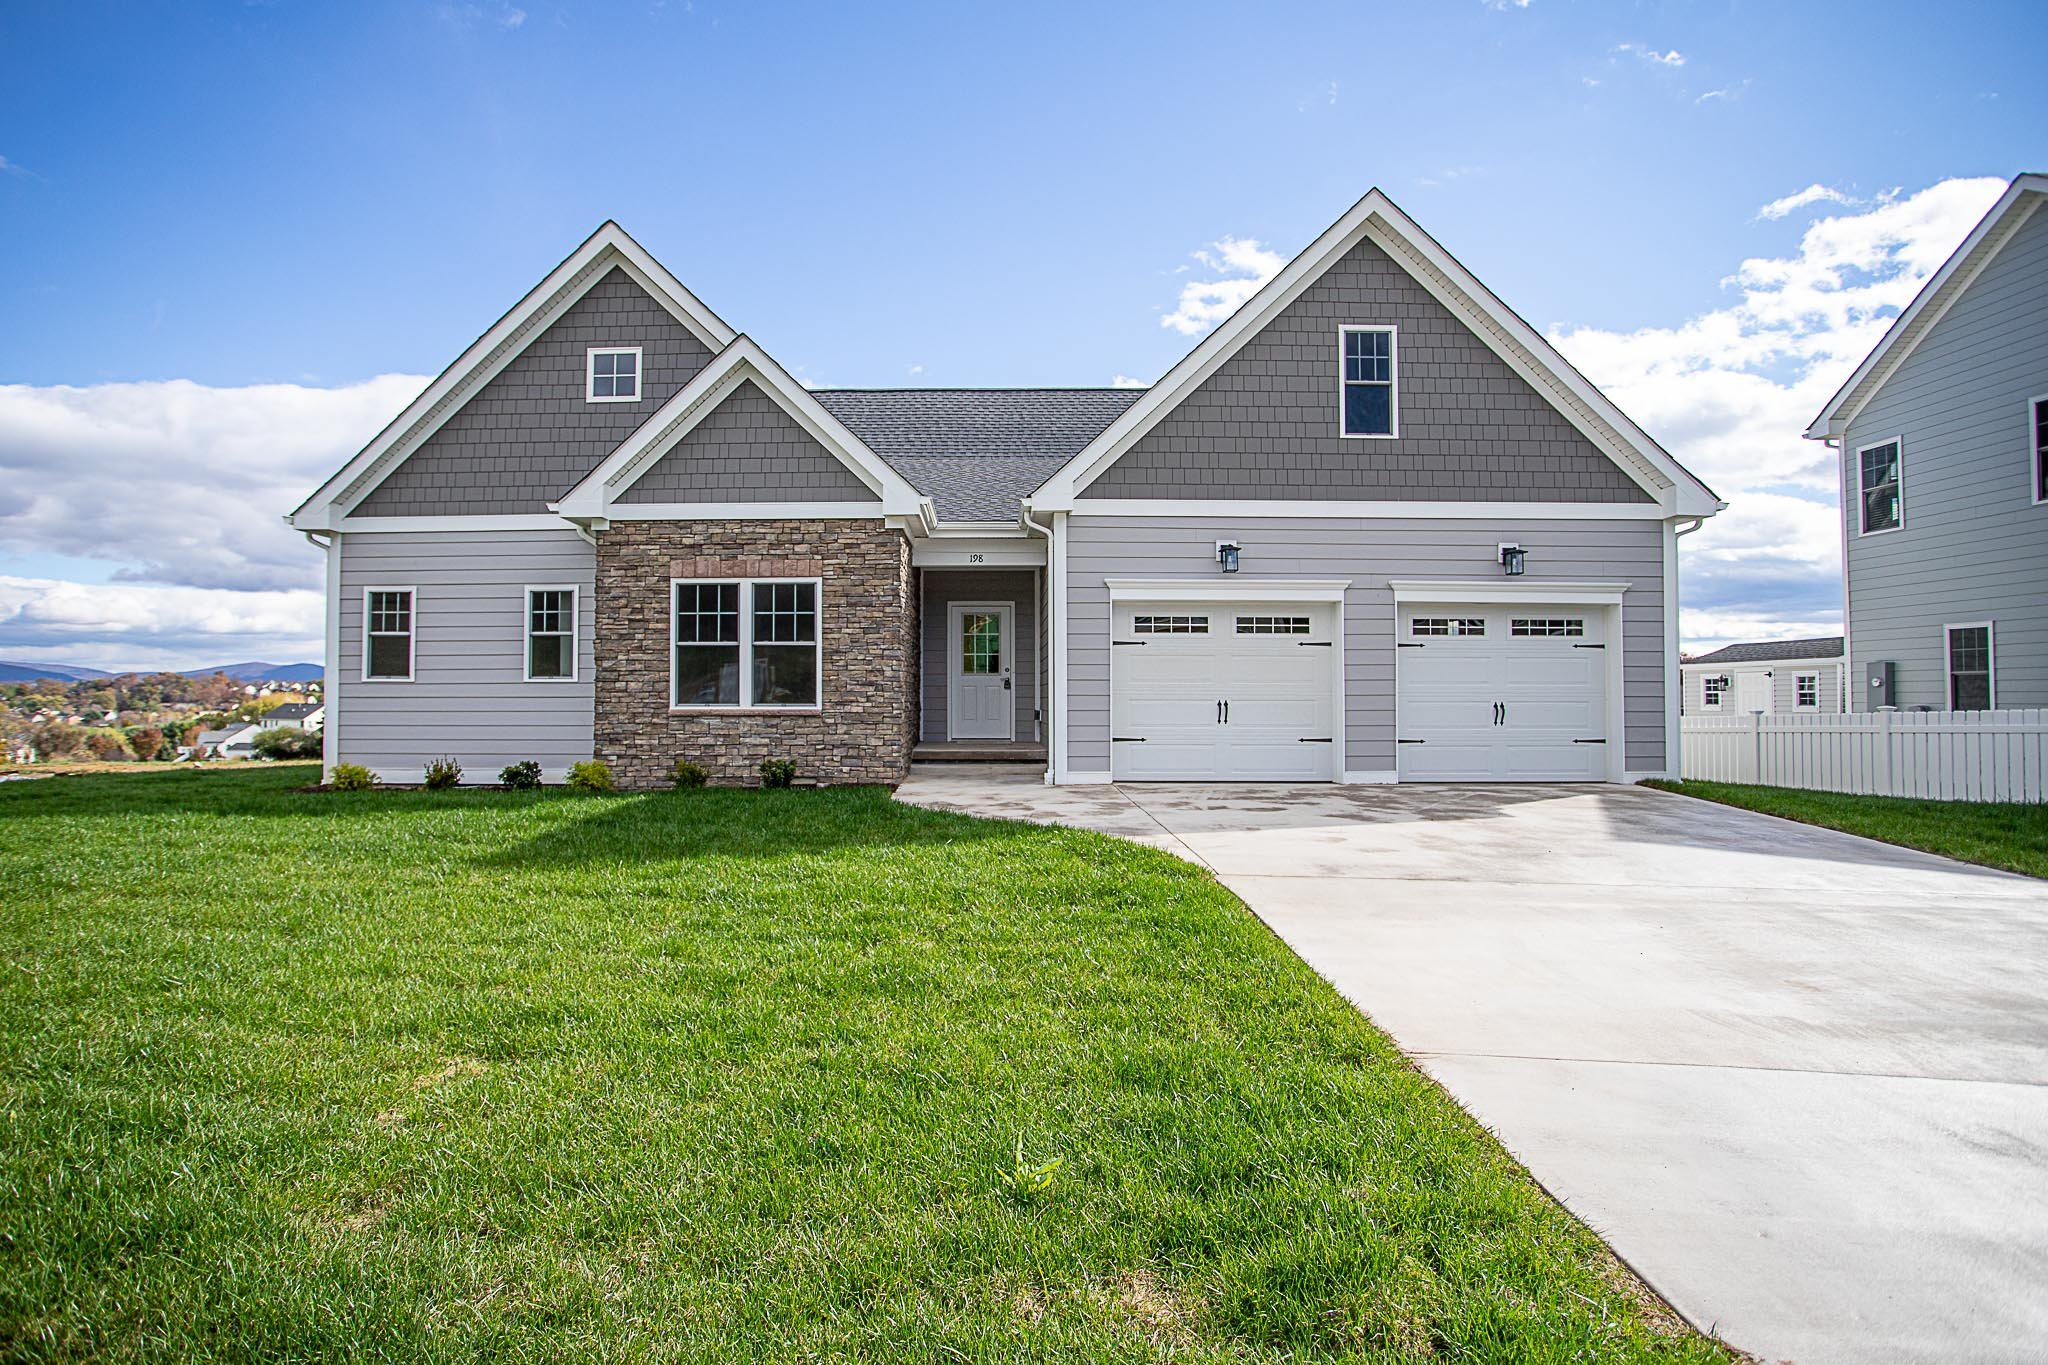 Brand New Home in Augusta County, 198 Windsor Dr, Fishersville